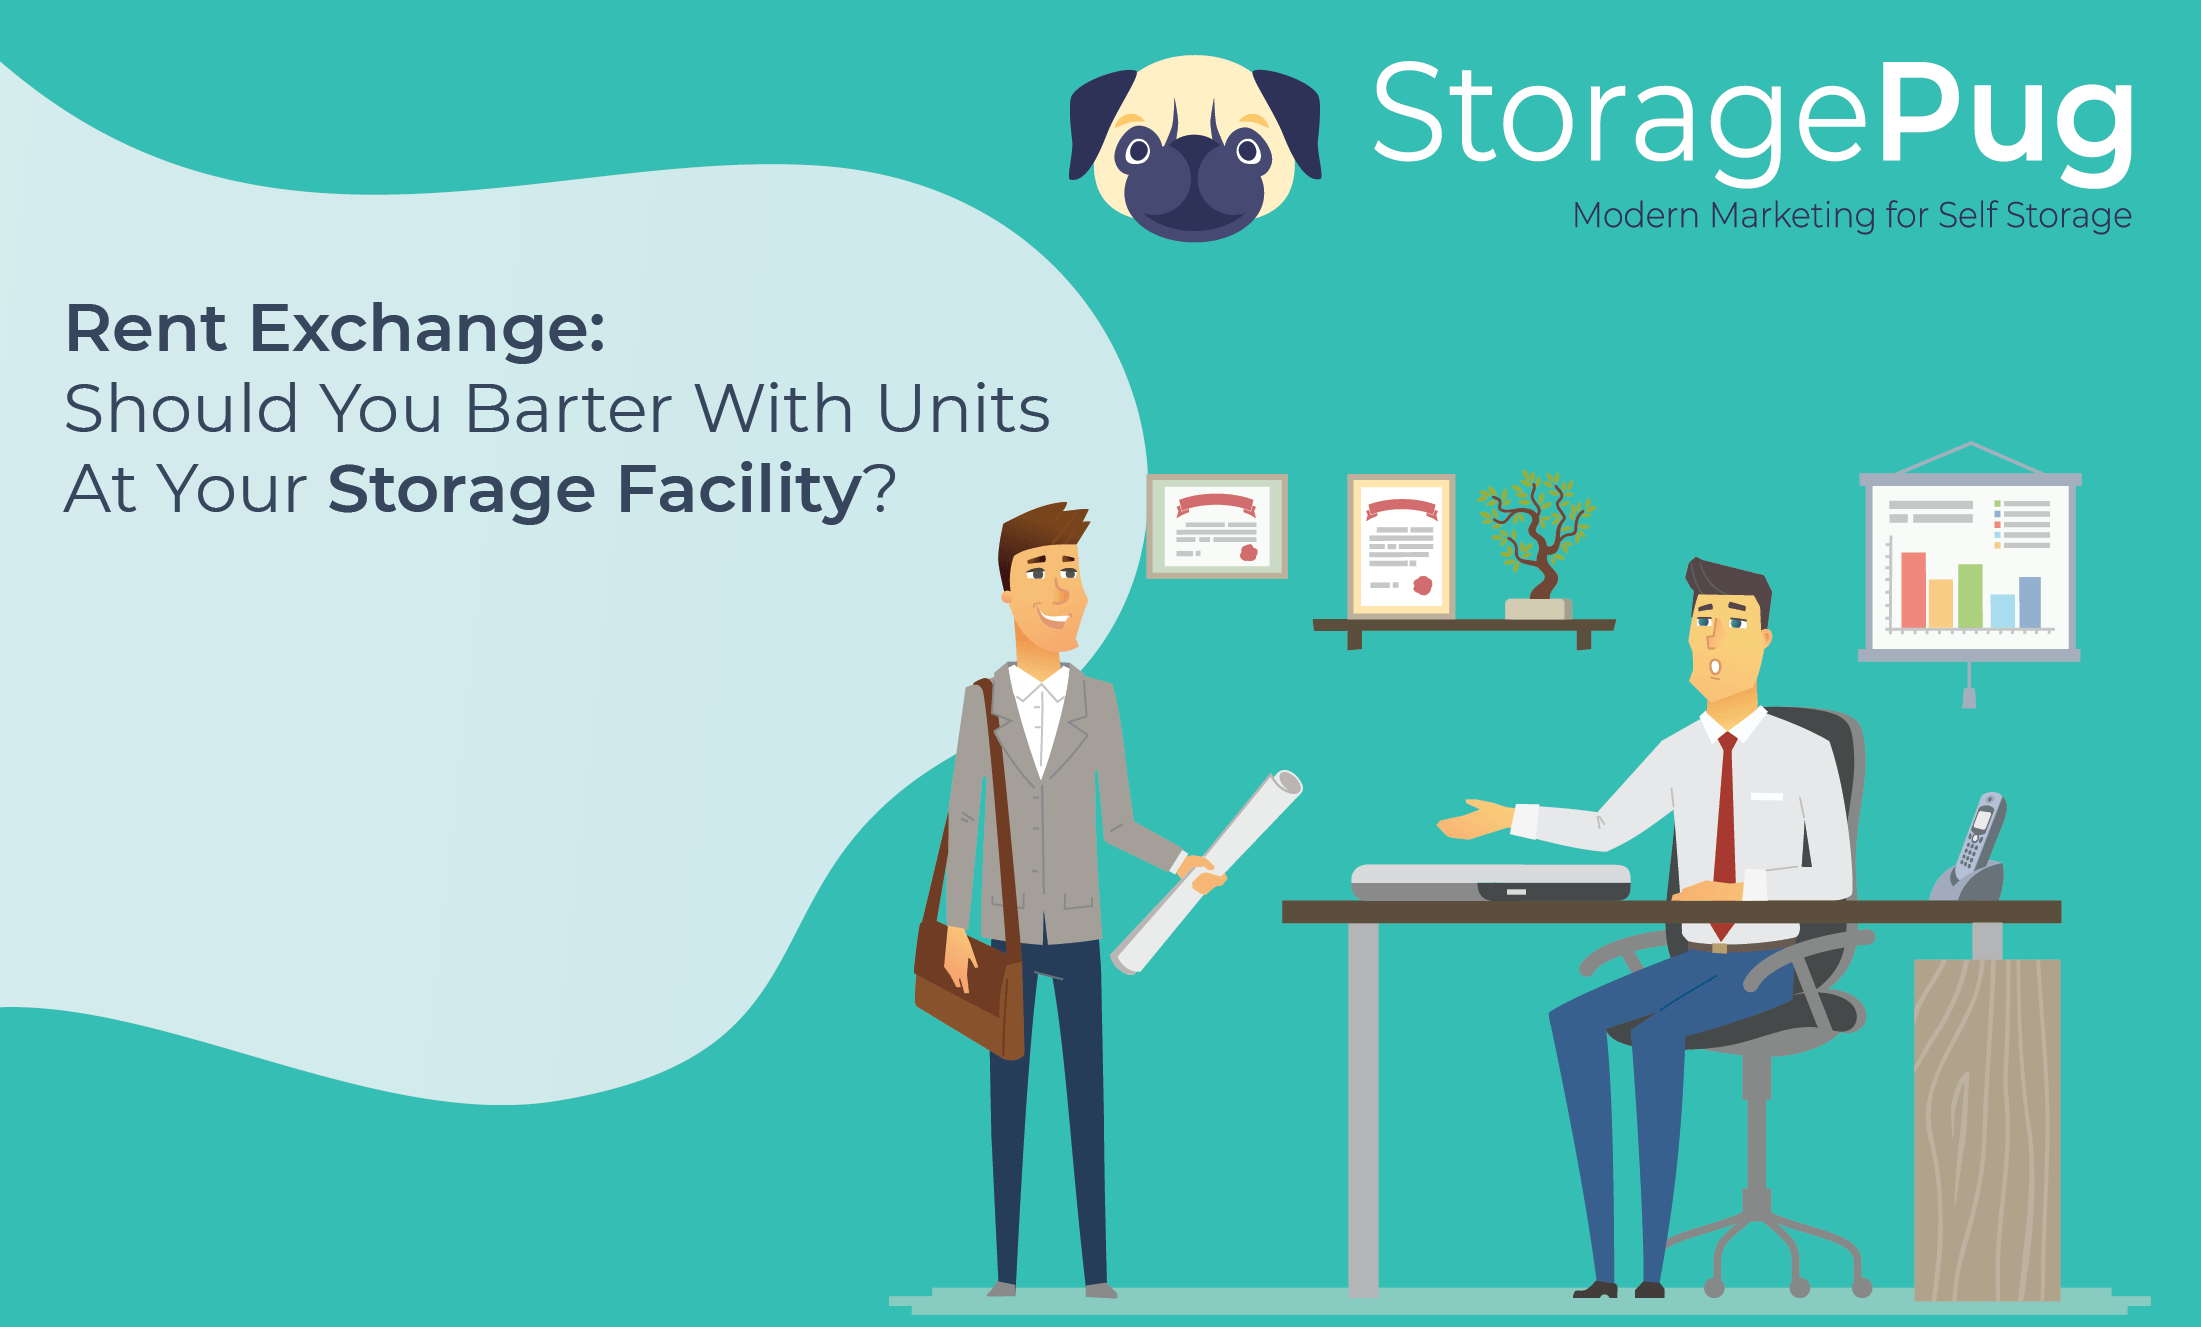 Rent Exchange Should You Barter With Units At Your Storage Facility@4x